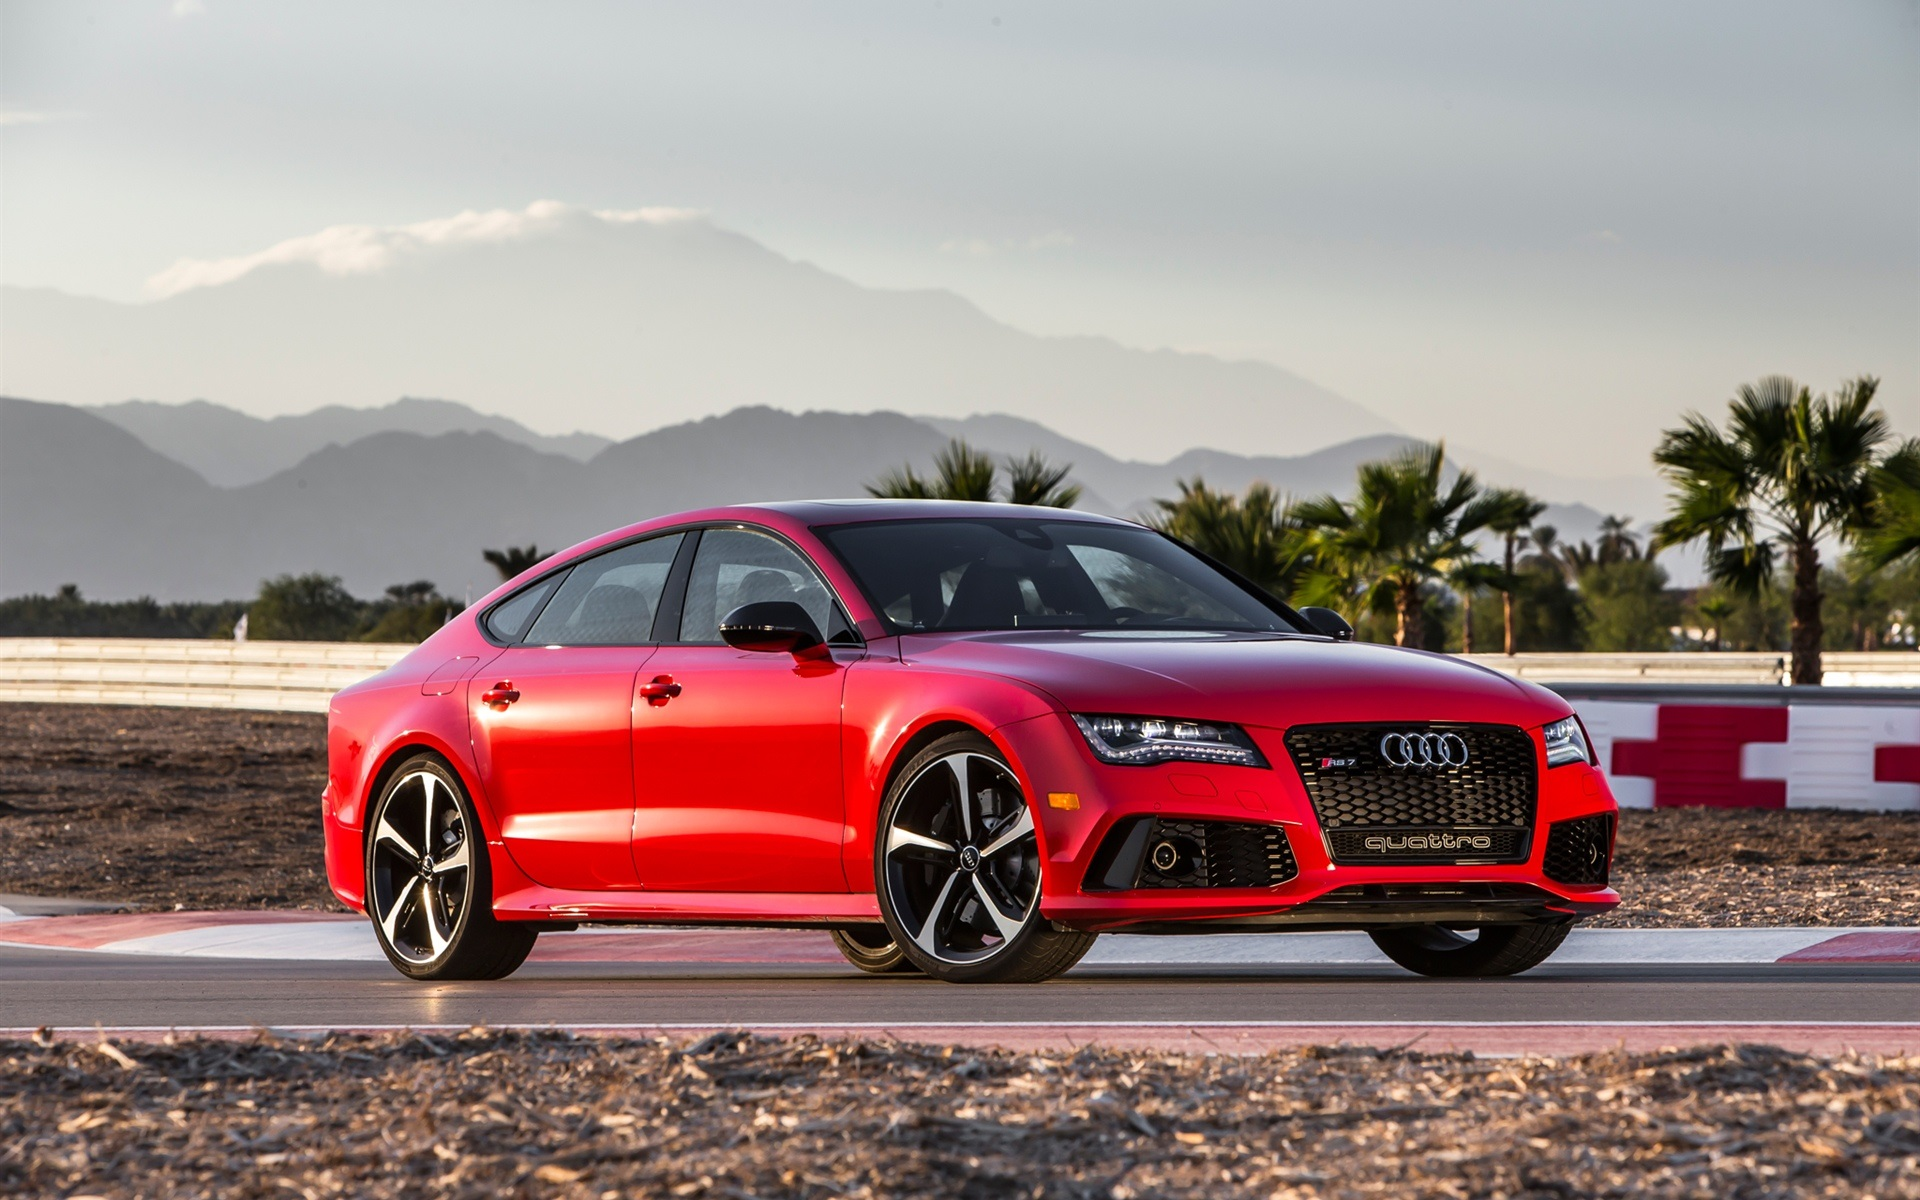 Wallpaper Audi Rs7 Red V8 Car 1920x1200 Hd Picture Image